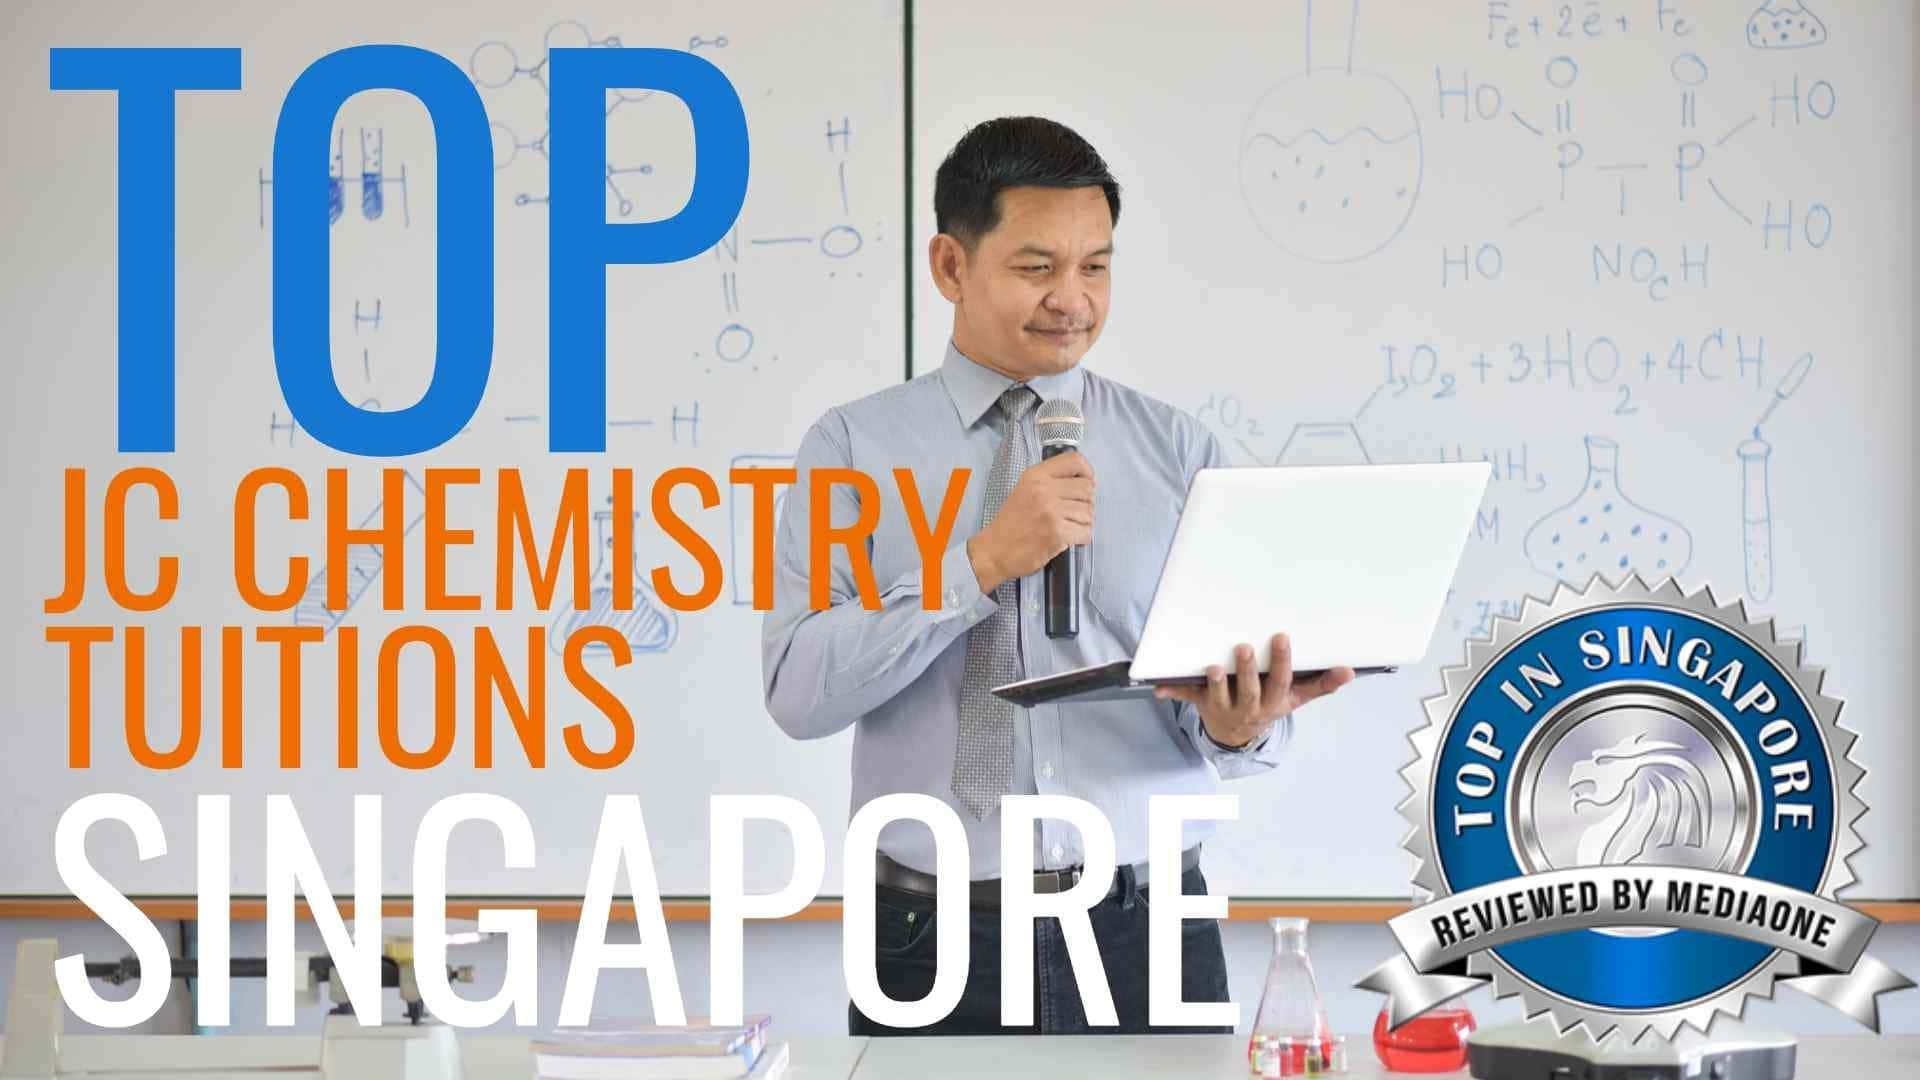 Top JC Chemistry Tuitions in Singapore